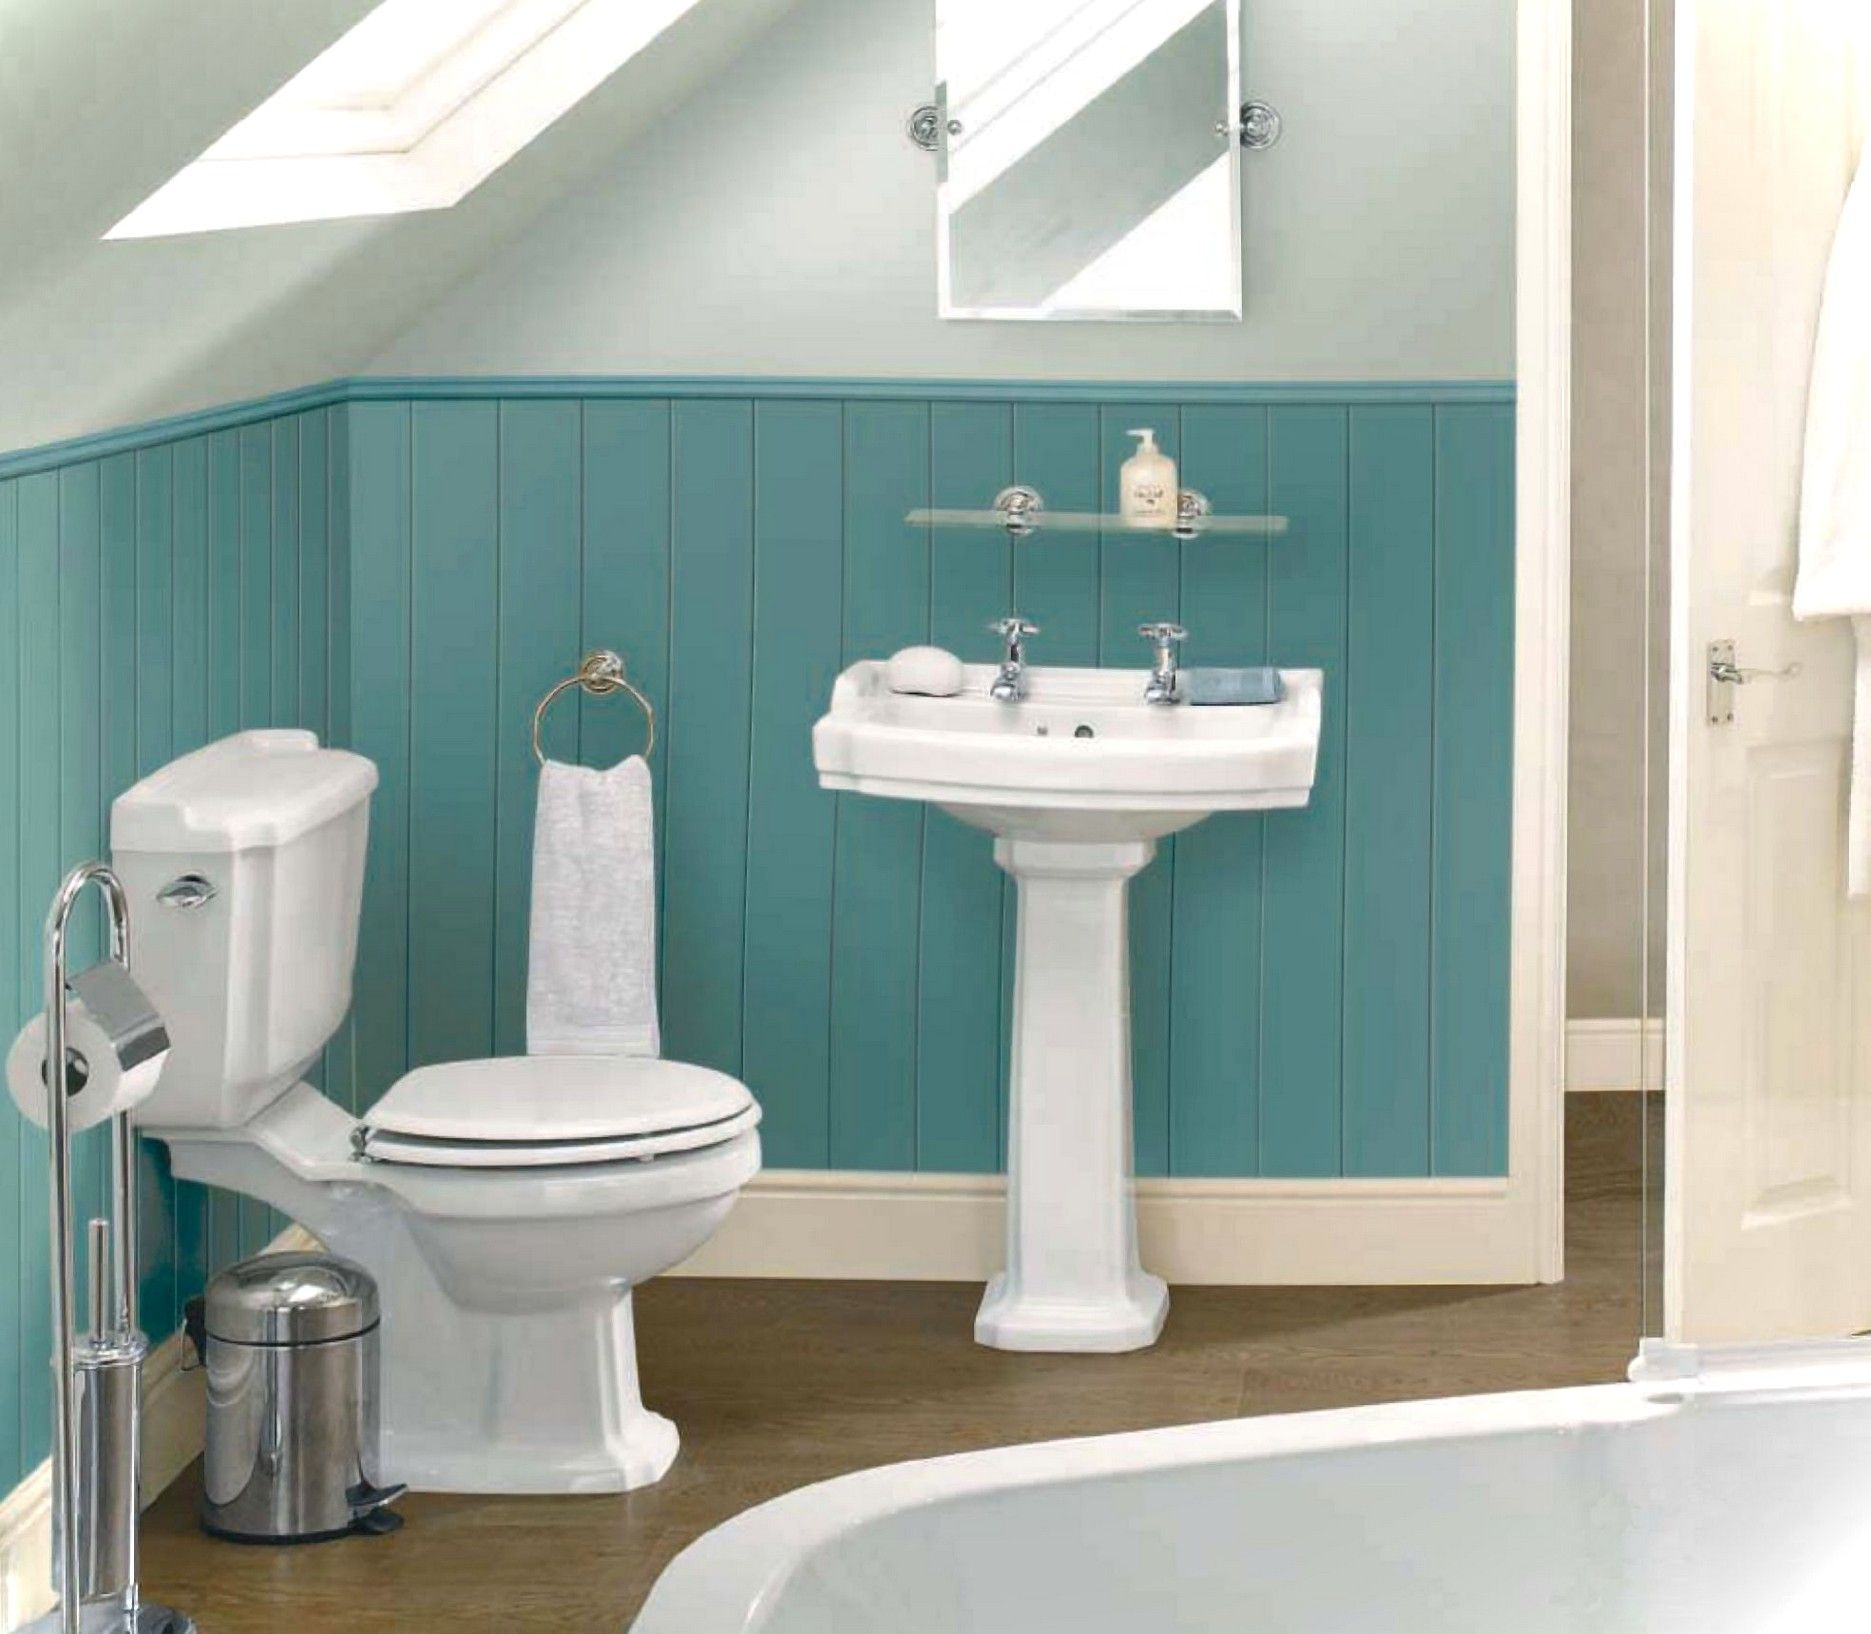 Bathroombeach Themed Small Bathroom Design Featured Pedestal Awesome Small Bathrooms Design Design Decoration